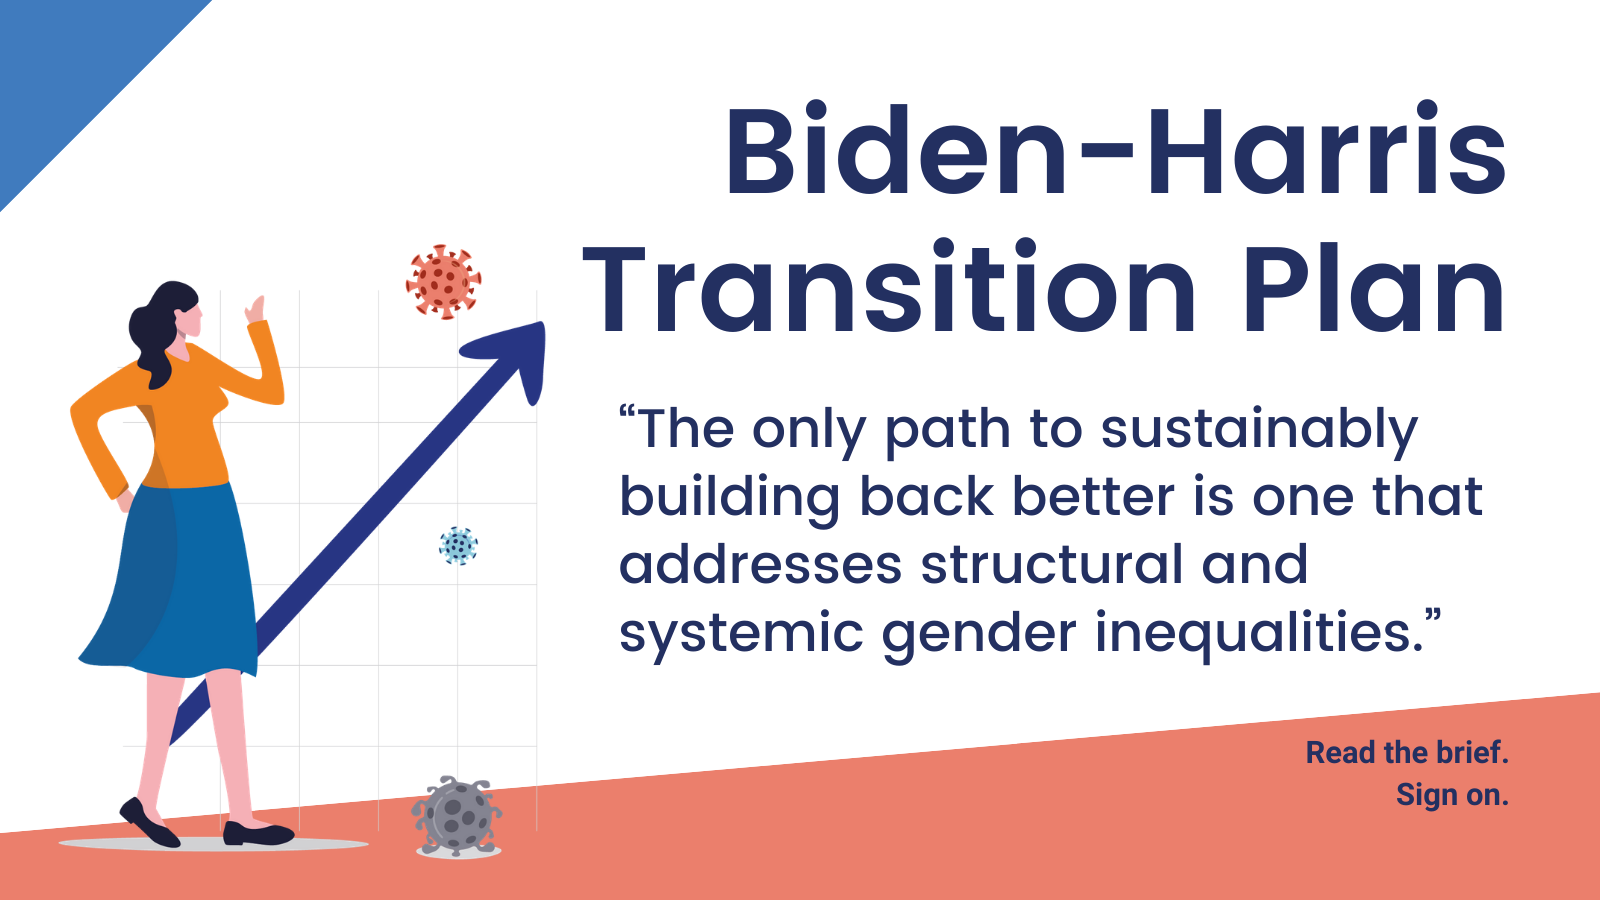 Biden-Harris Transition Plan